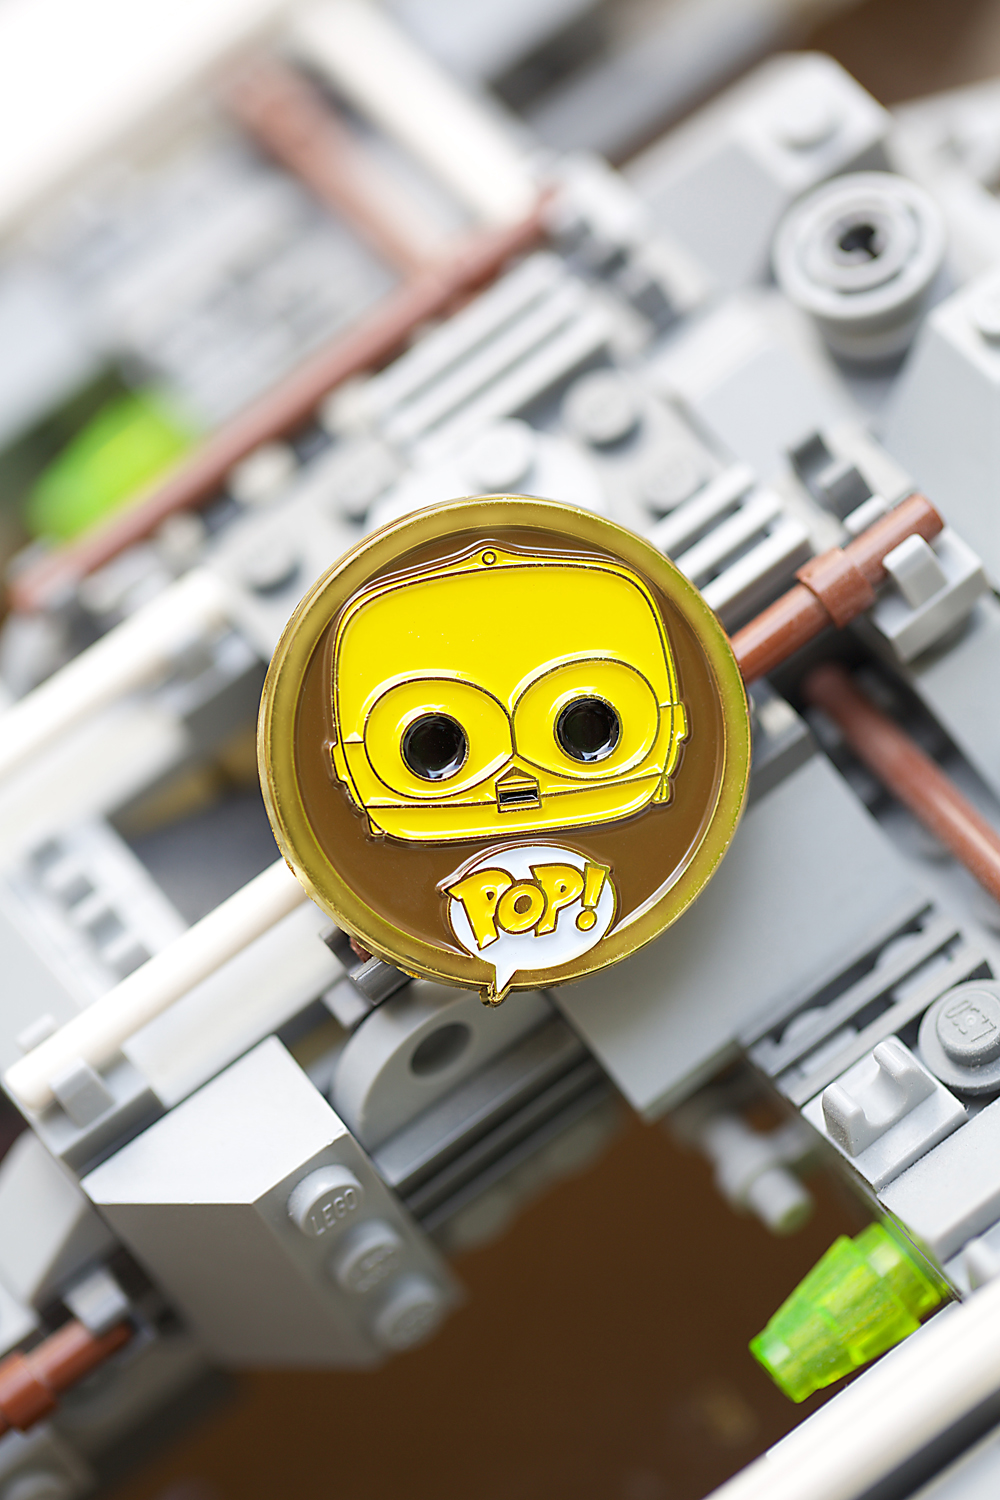 006_pin_c3po_beauty1s.jpg